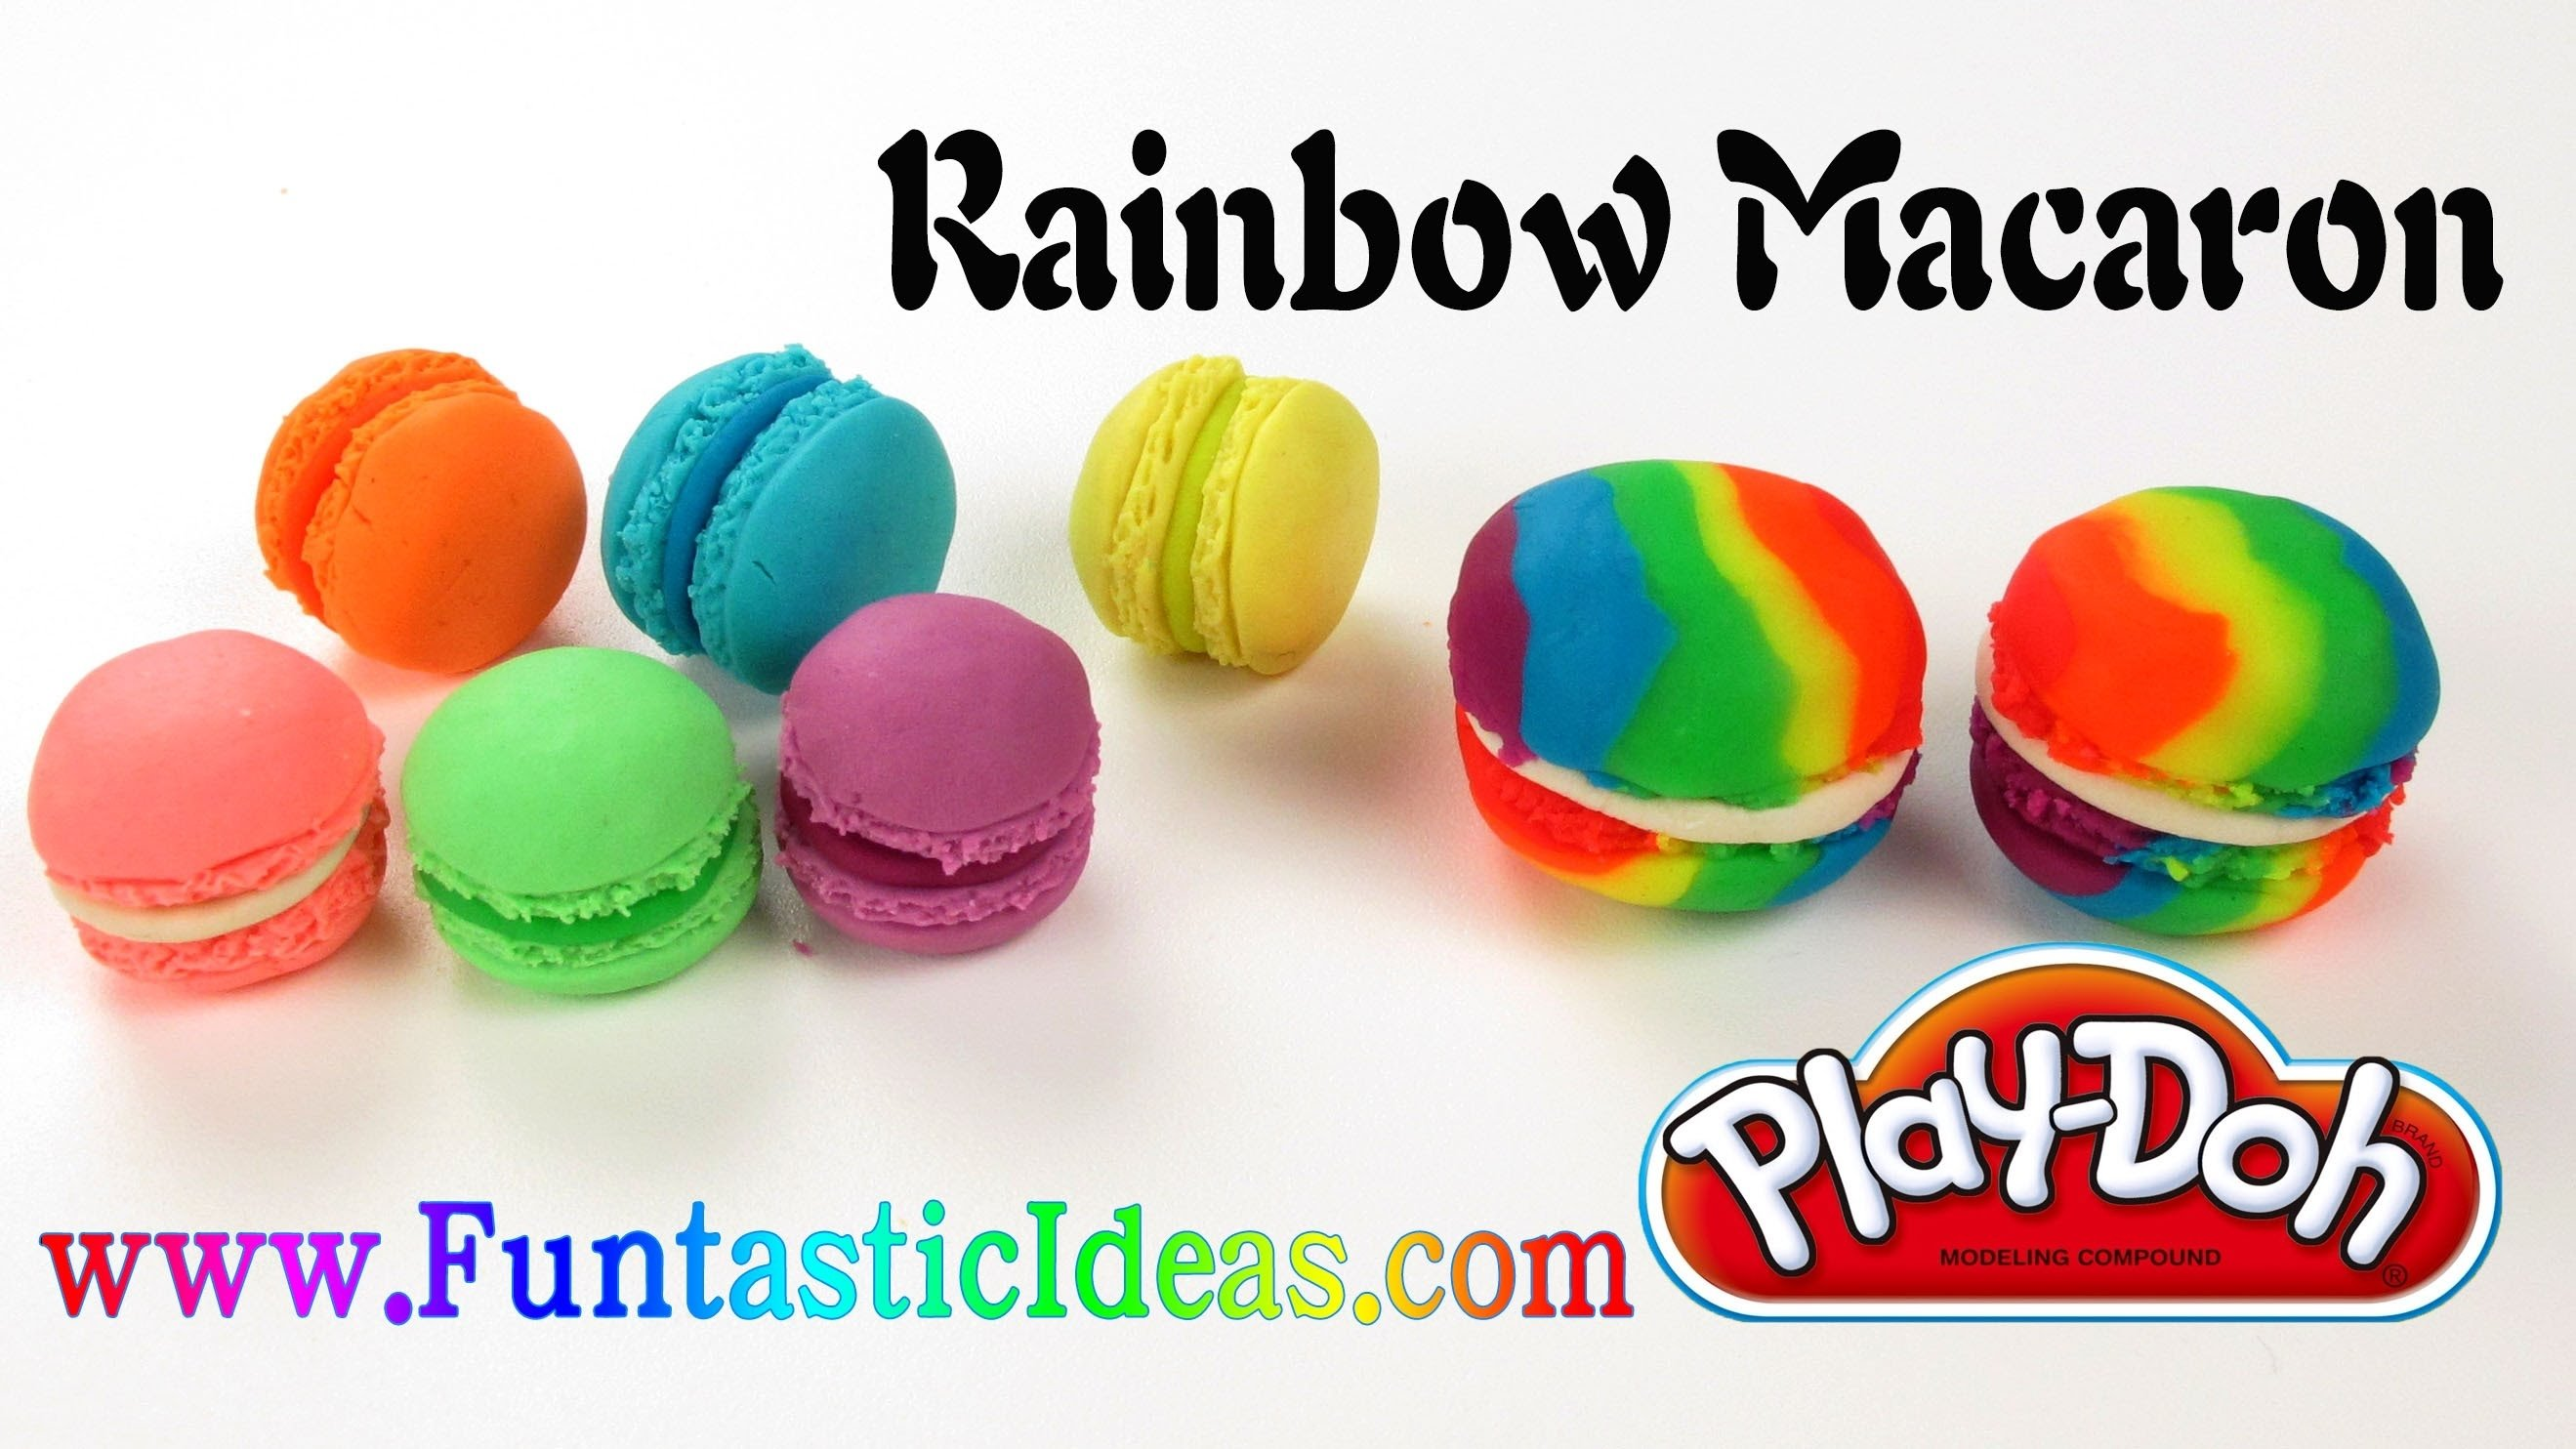 10 Wonderful Play Doh Ideas For Kids play doh rainbow macaron how to with playdough easy fun idea for 2021